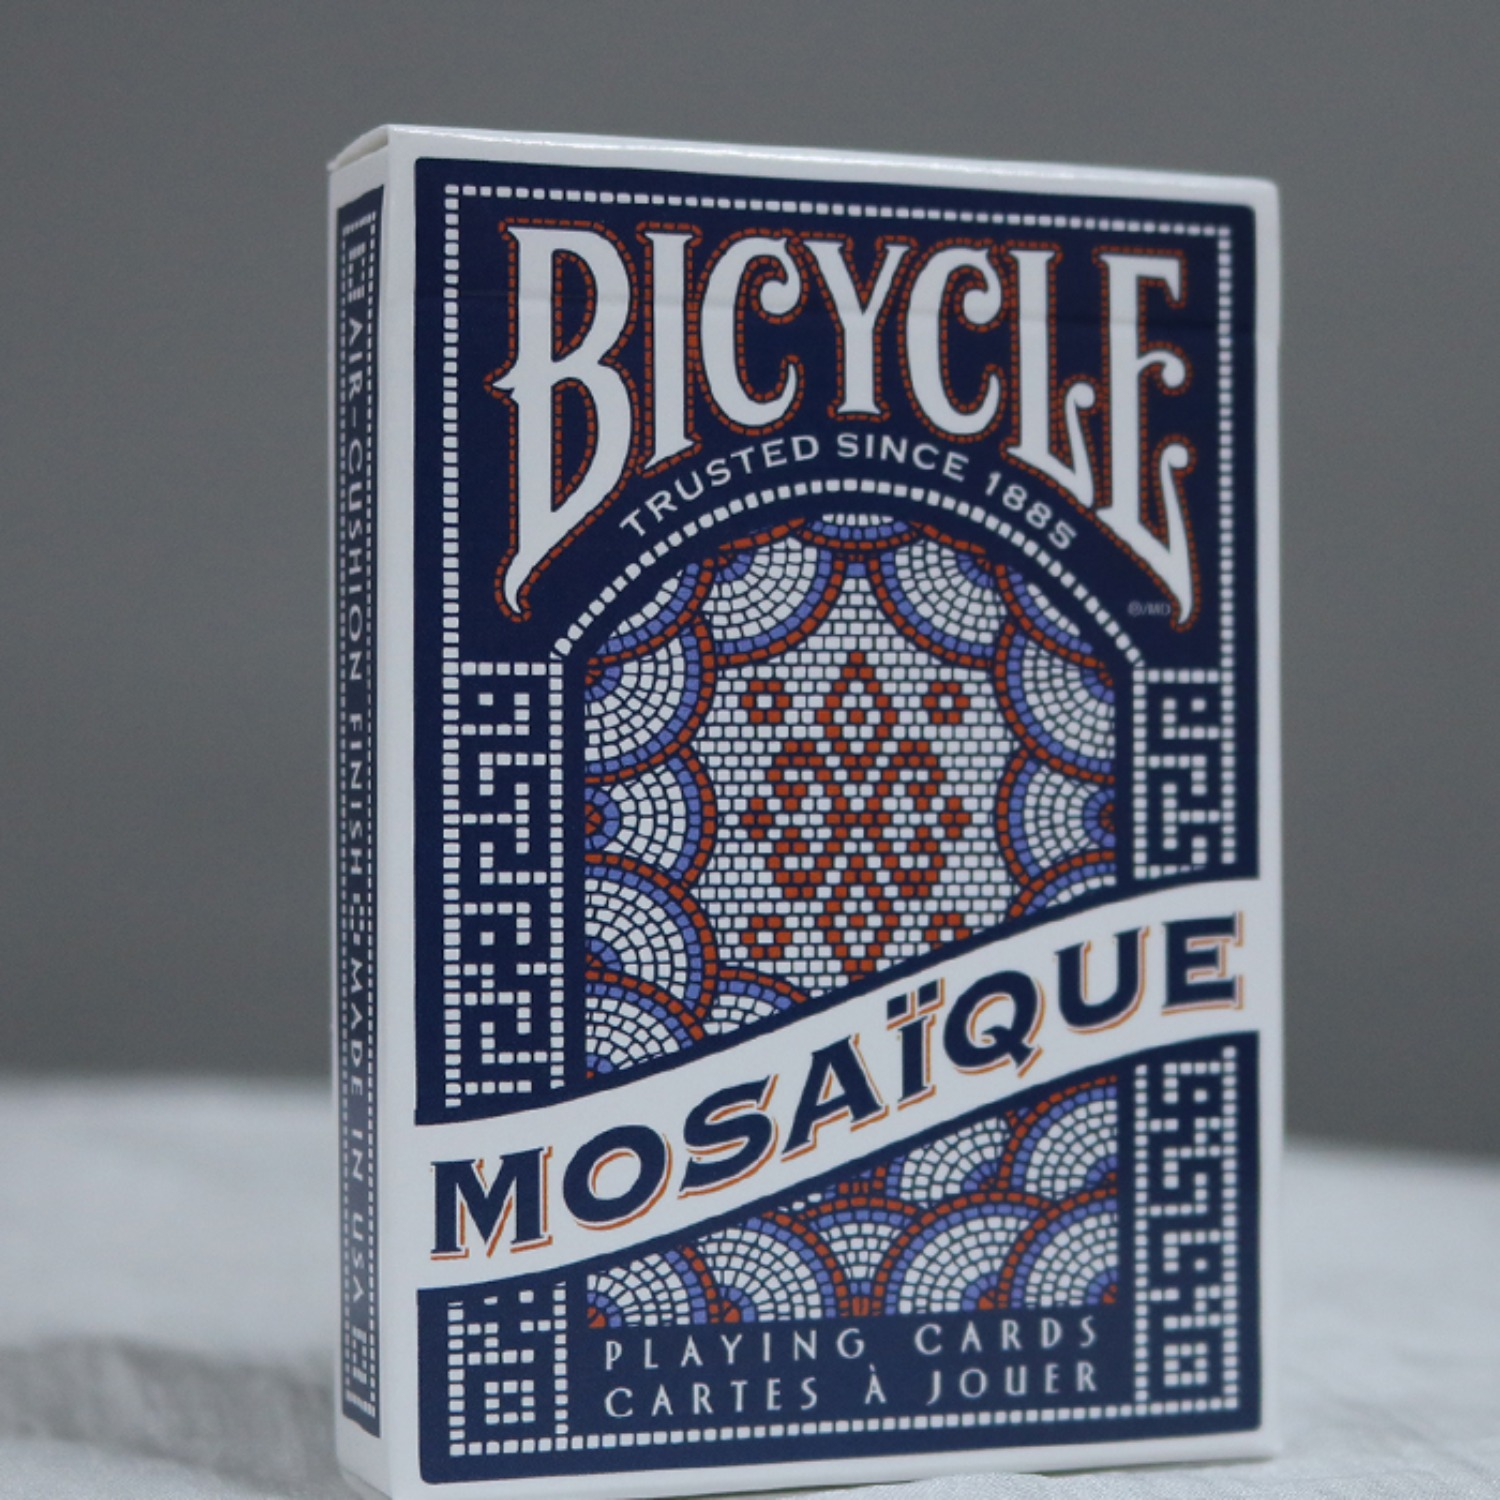 [모자이크덱] Bicycle Mosaique